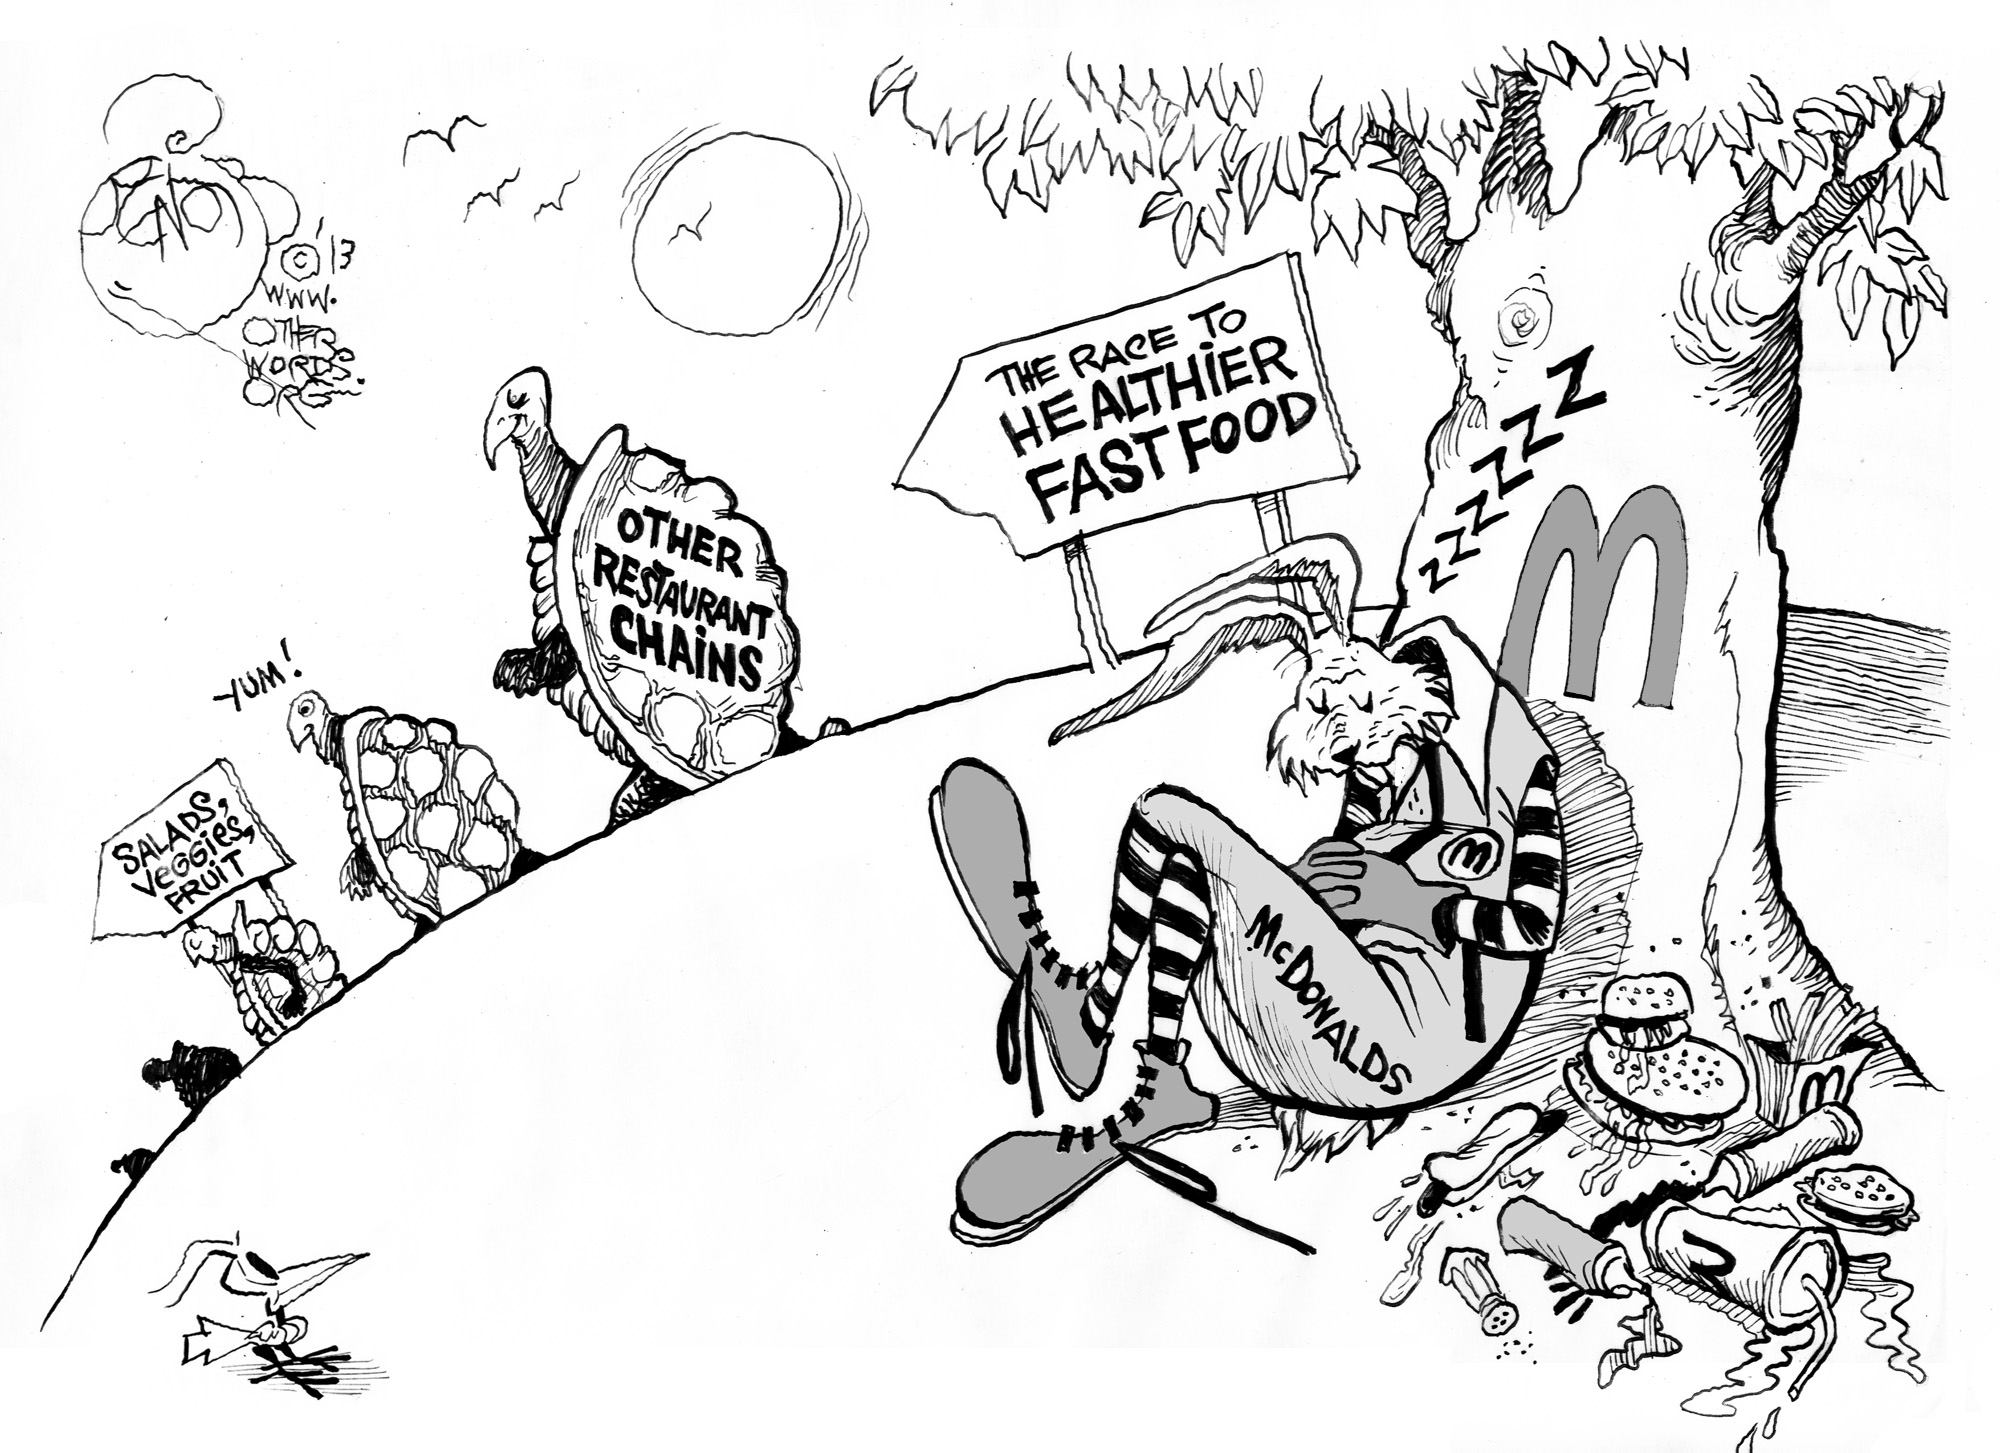 The Slow Road to Better Fast Food